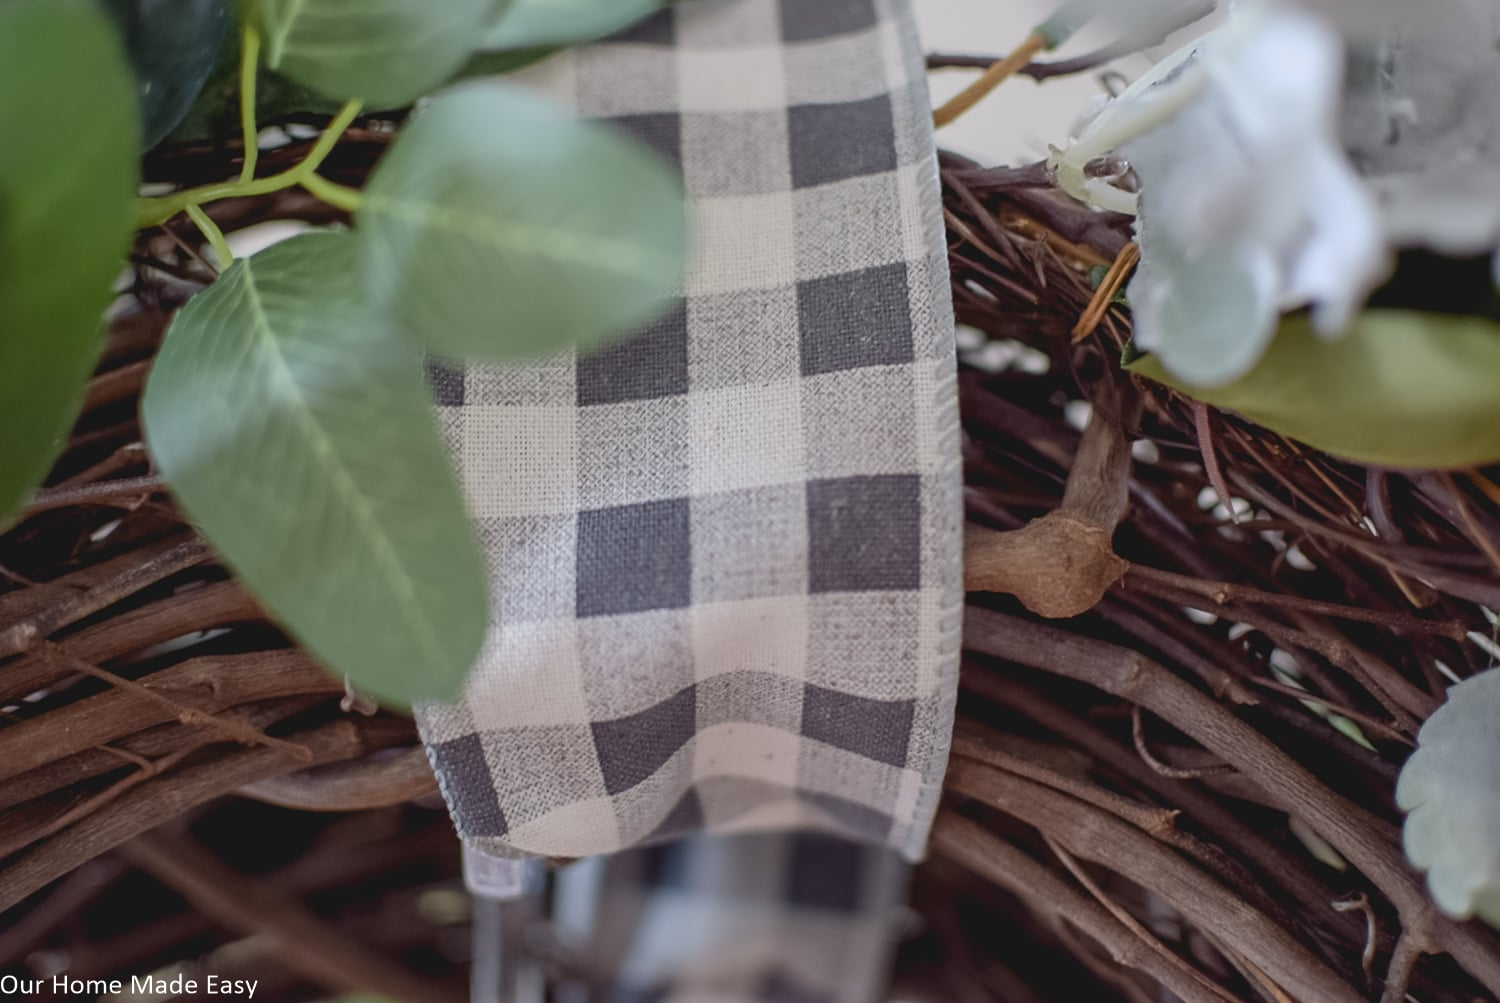 Plaid ribbon is a great way to add simple touches of fall home decor